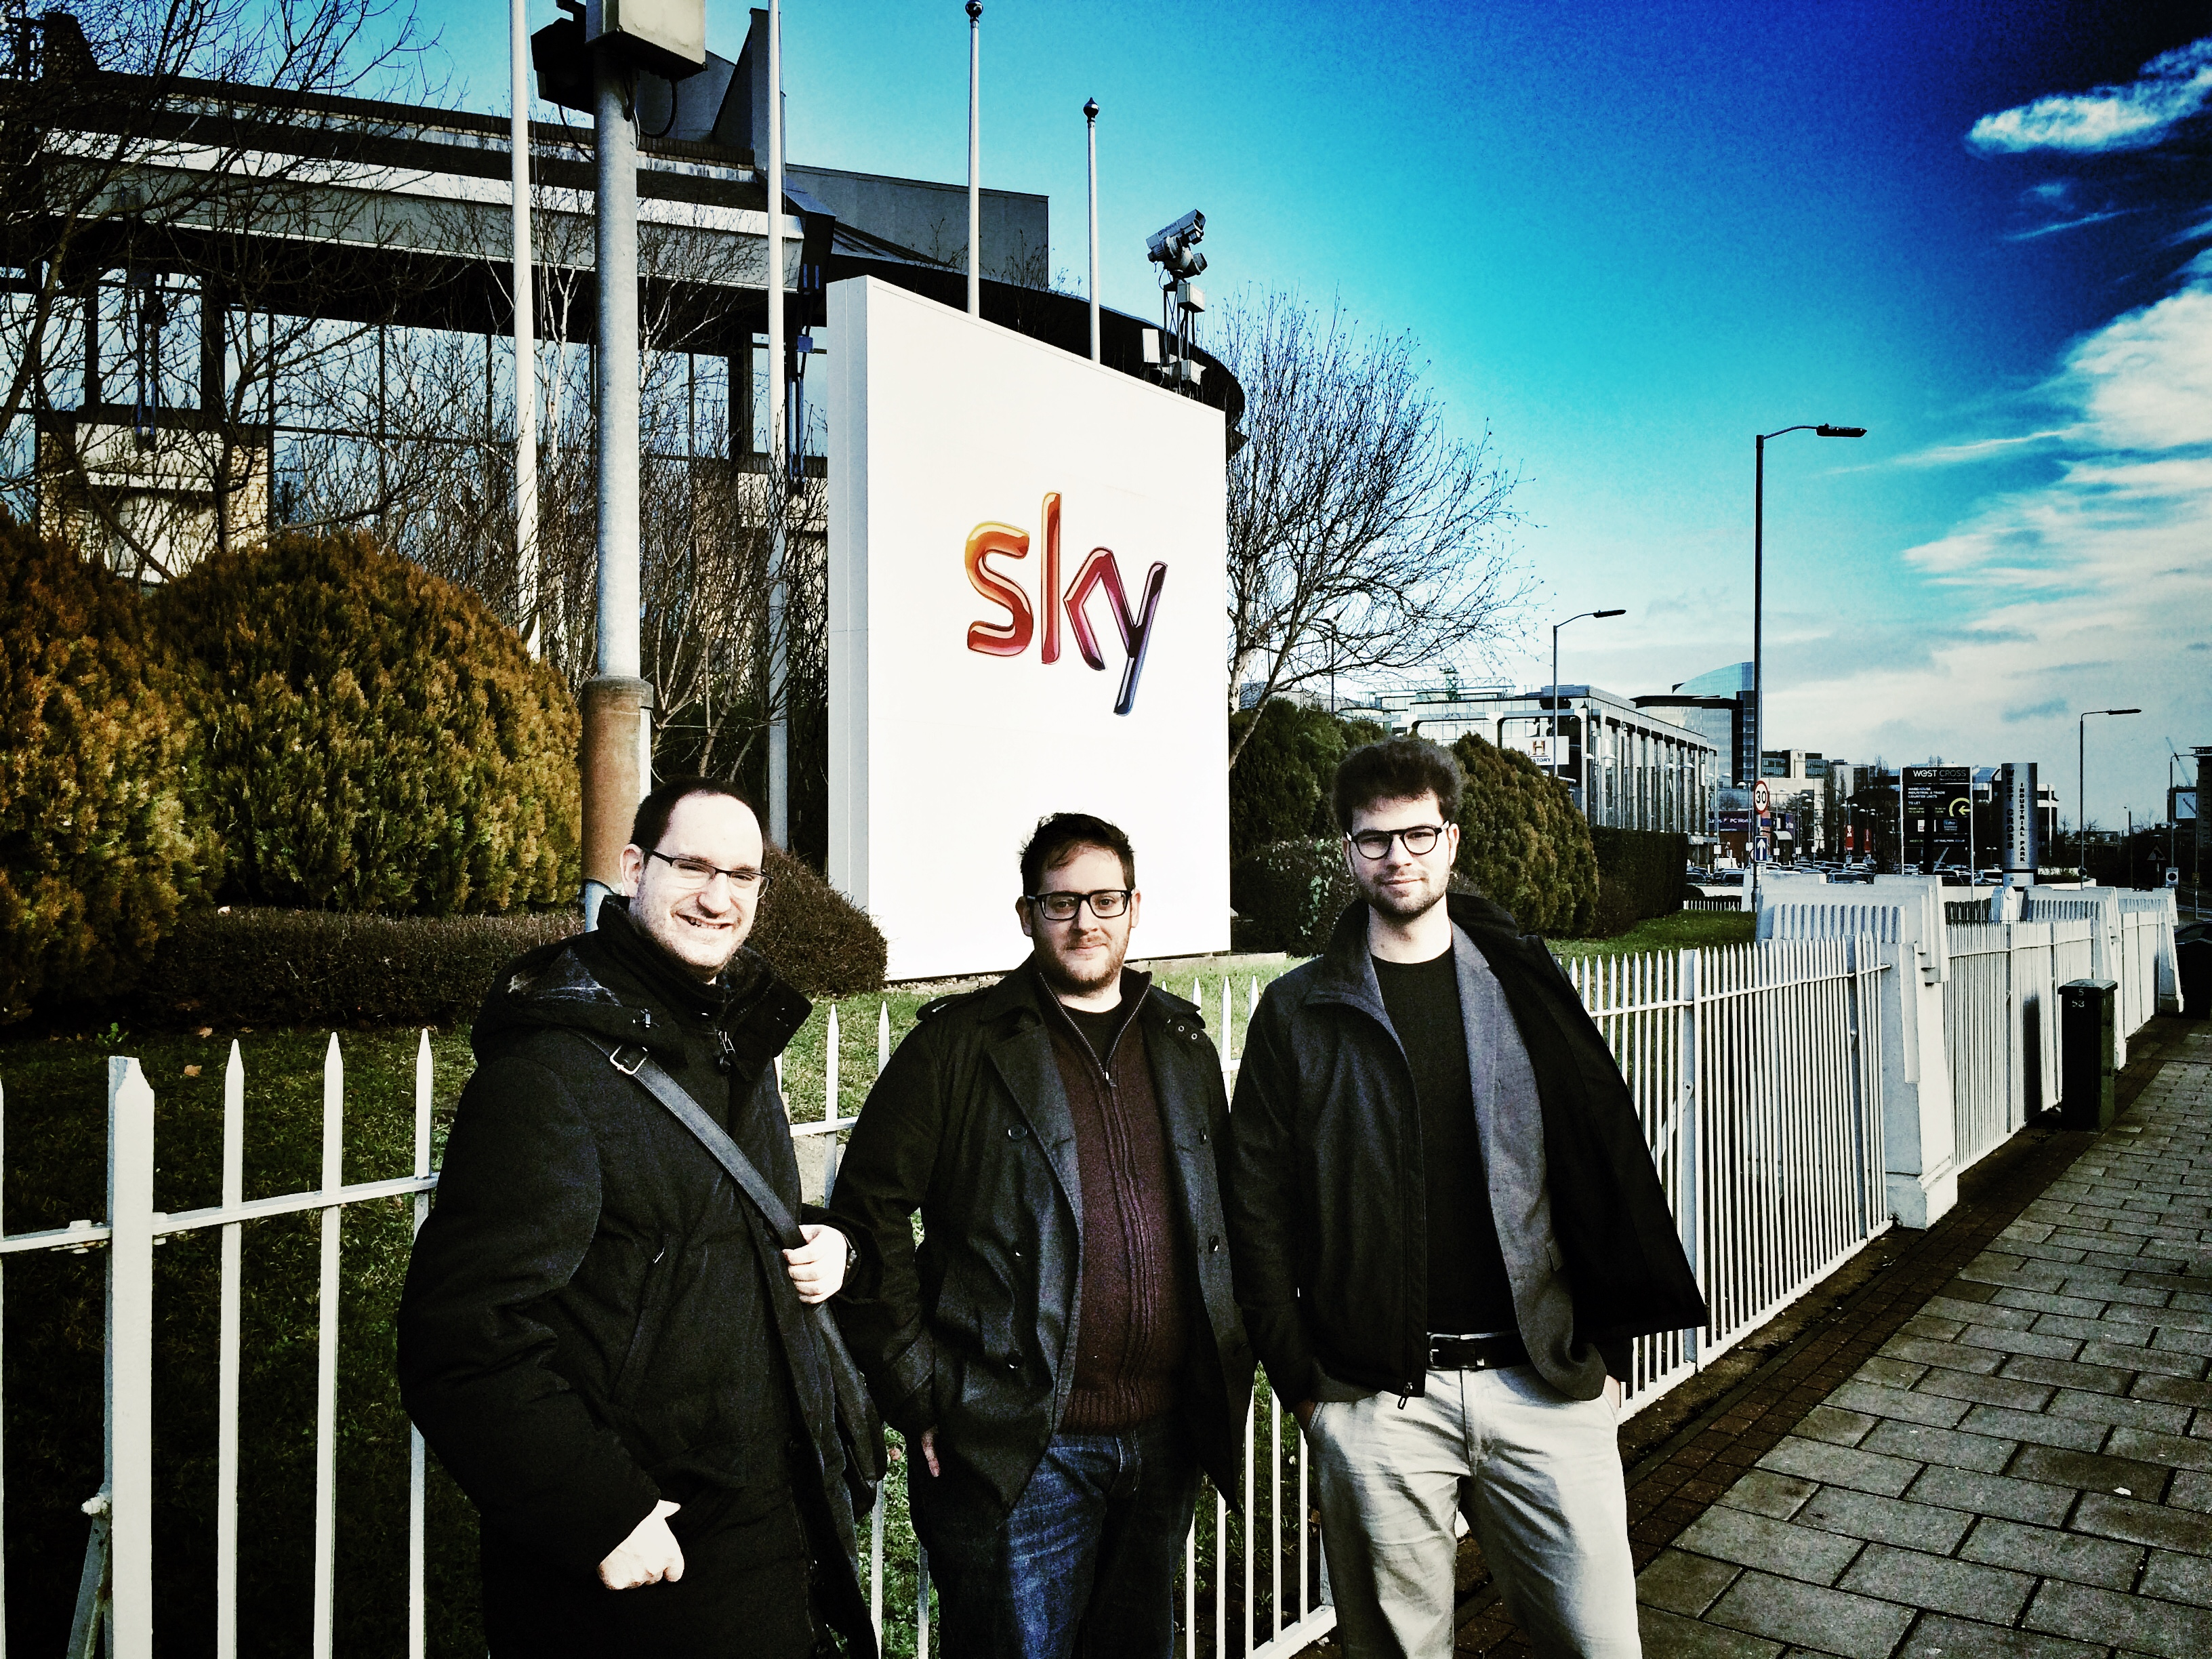 SKY NEWS - down in Osterly